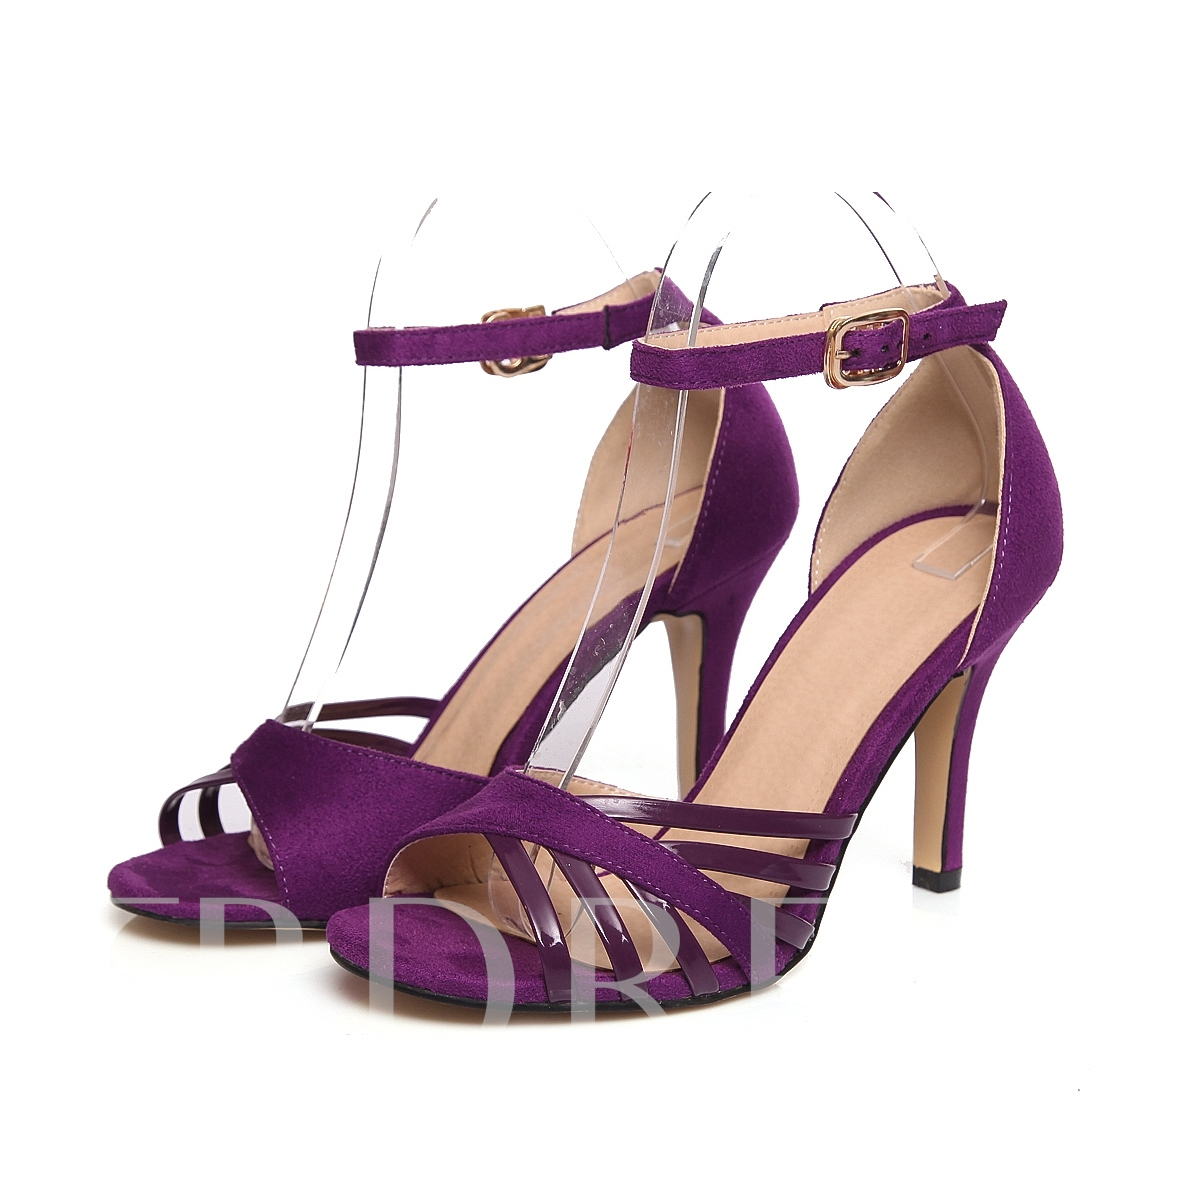 Open Toe Stiletto Heel Strappy Women's Sandals